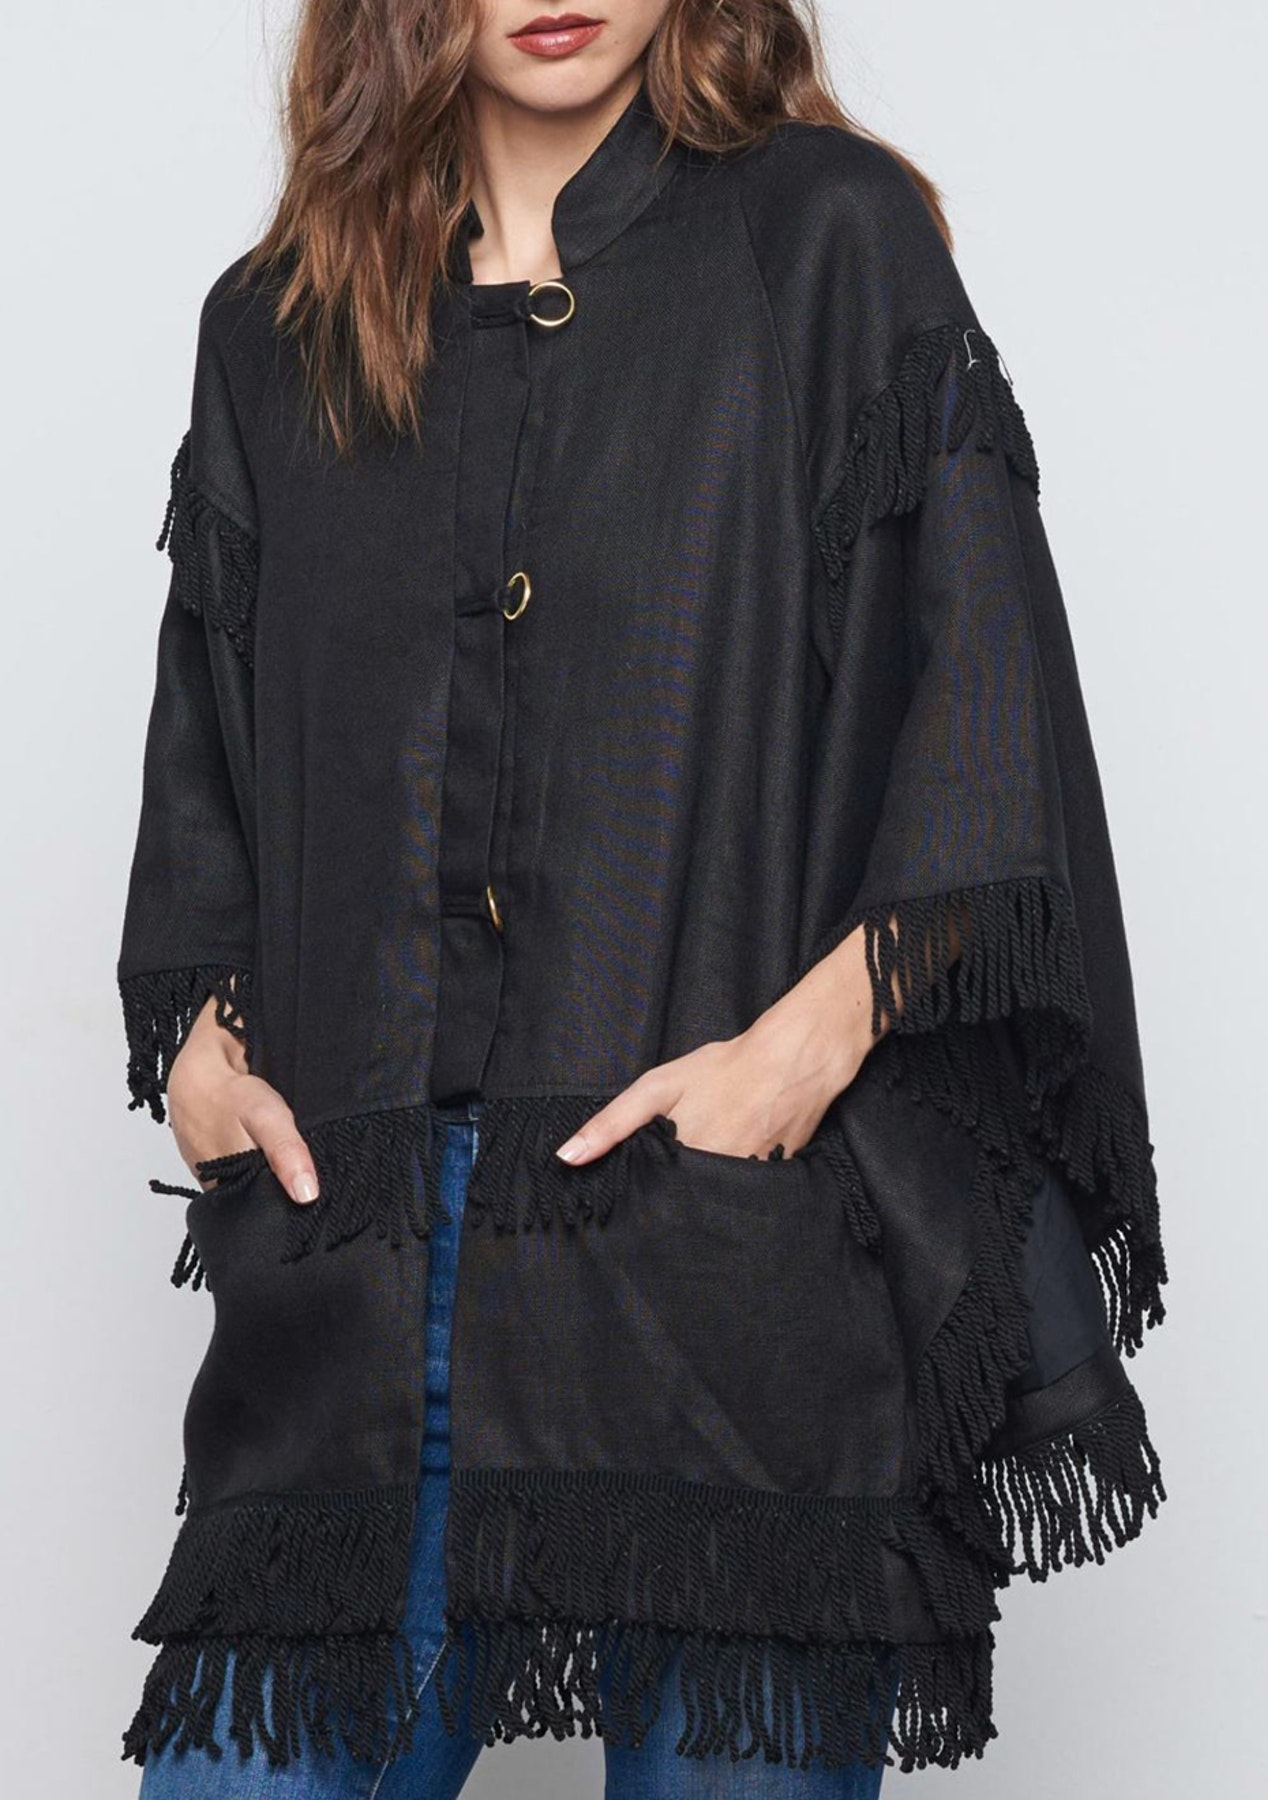 bd03eced990558 Stevie May - New Wave Coat - Black - Womens Rummage Rack - Onceit